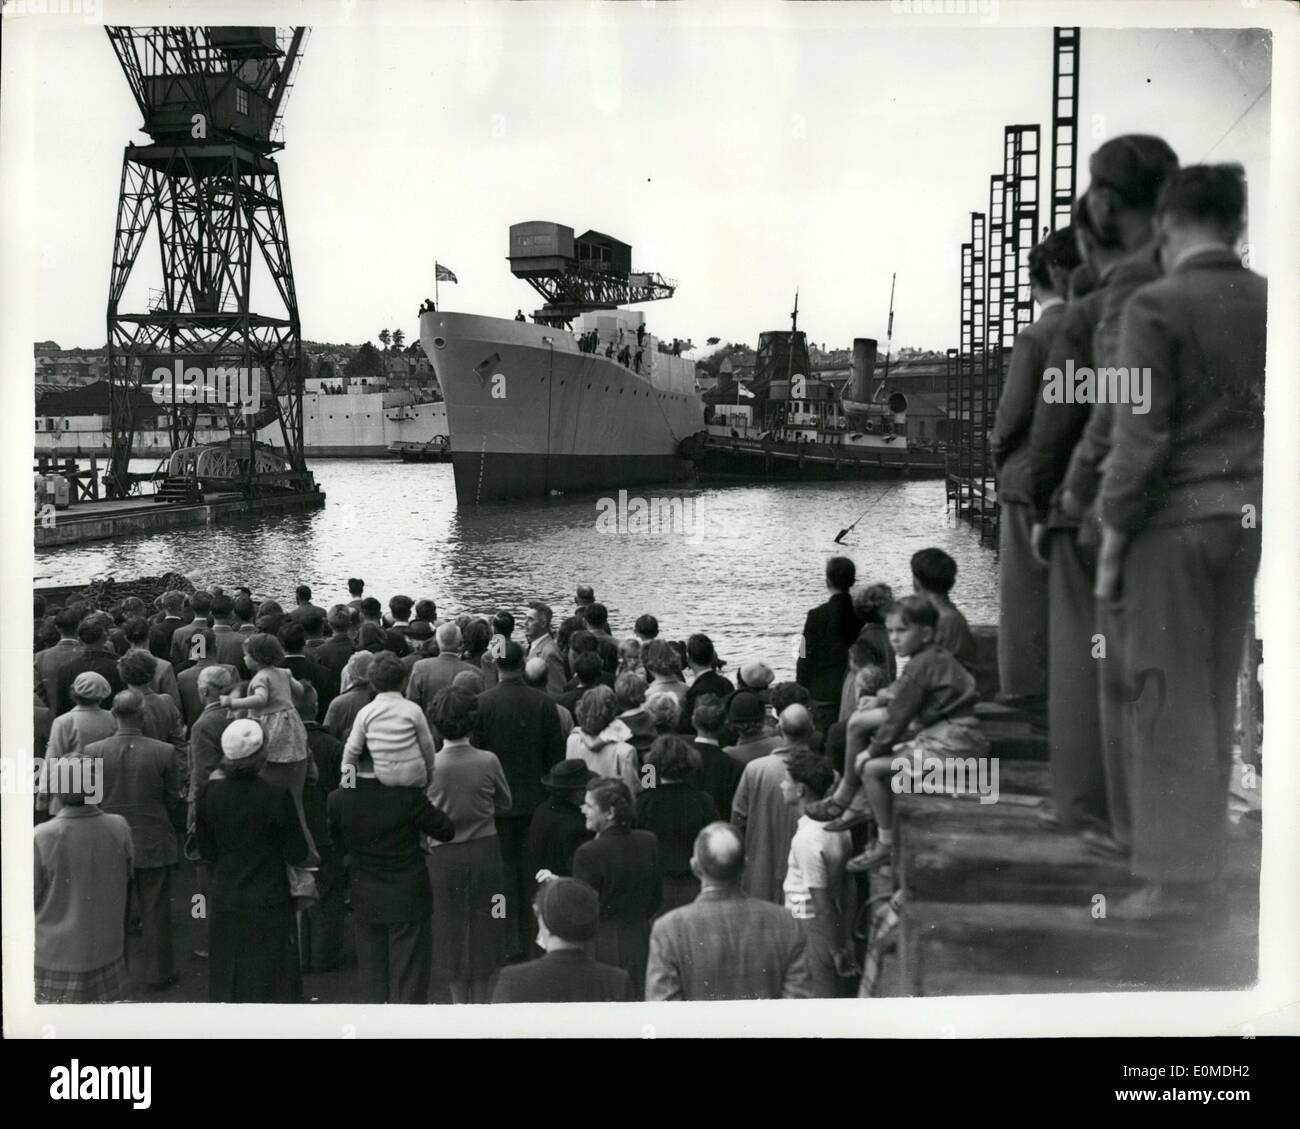 Sep. 09, 1954 - New anti-submarine frigate launched at Cowes. H.M.S. Grafton.: H.M.S. Grafton, an anti-submarine frigate was launched by Lady Grantham,wife of Admiral Sir Gut Grantham K.C.B., C.B.E., D.S.O. who is to take over from Admiral Lord Mountbatten as C. in C. Mediterranean-at the Samuel White Shipyard Cowes, this afternoon. The vessel is 310feet long with a beam of 33 feet and is powered by geared system turbines of advanced design, she is armed with three Bofors guns and two three-barrelled anti-submarine mortars of the same design as fitted to H.M.S. Rocket - Stock Image